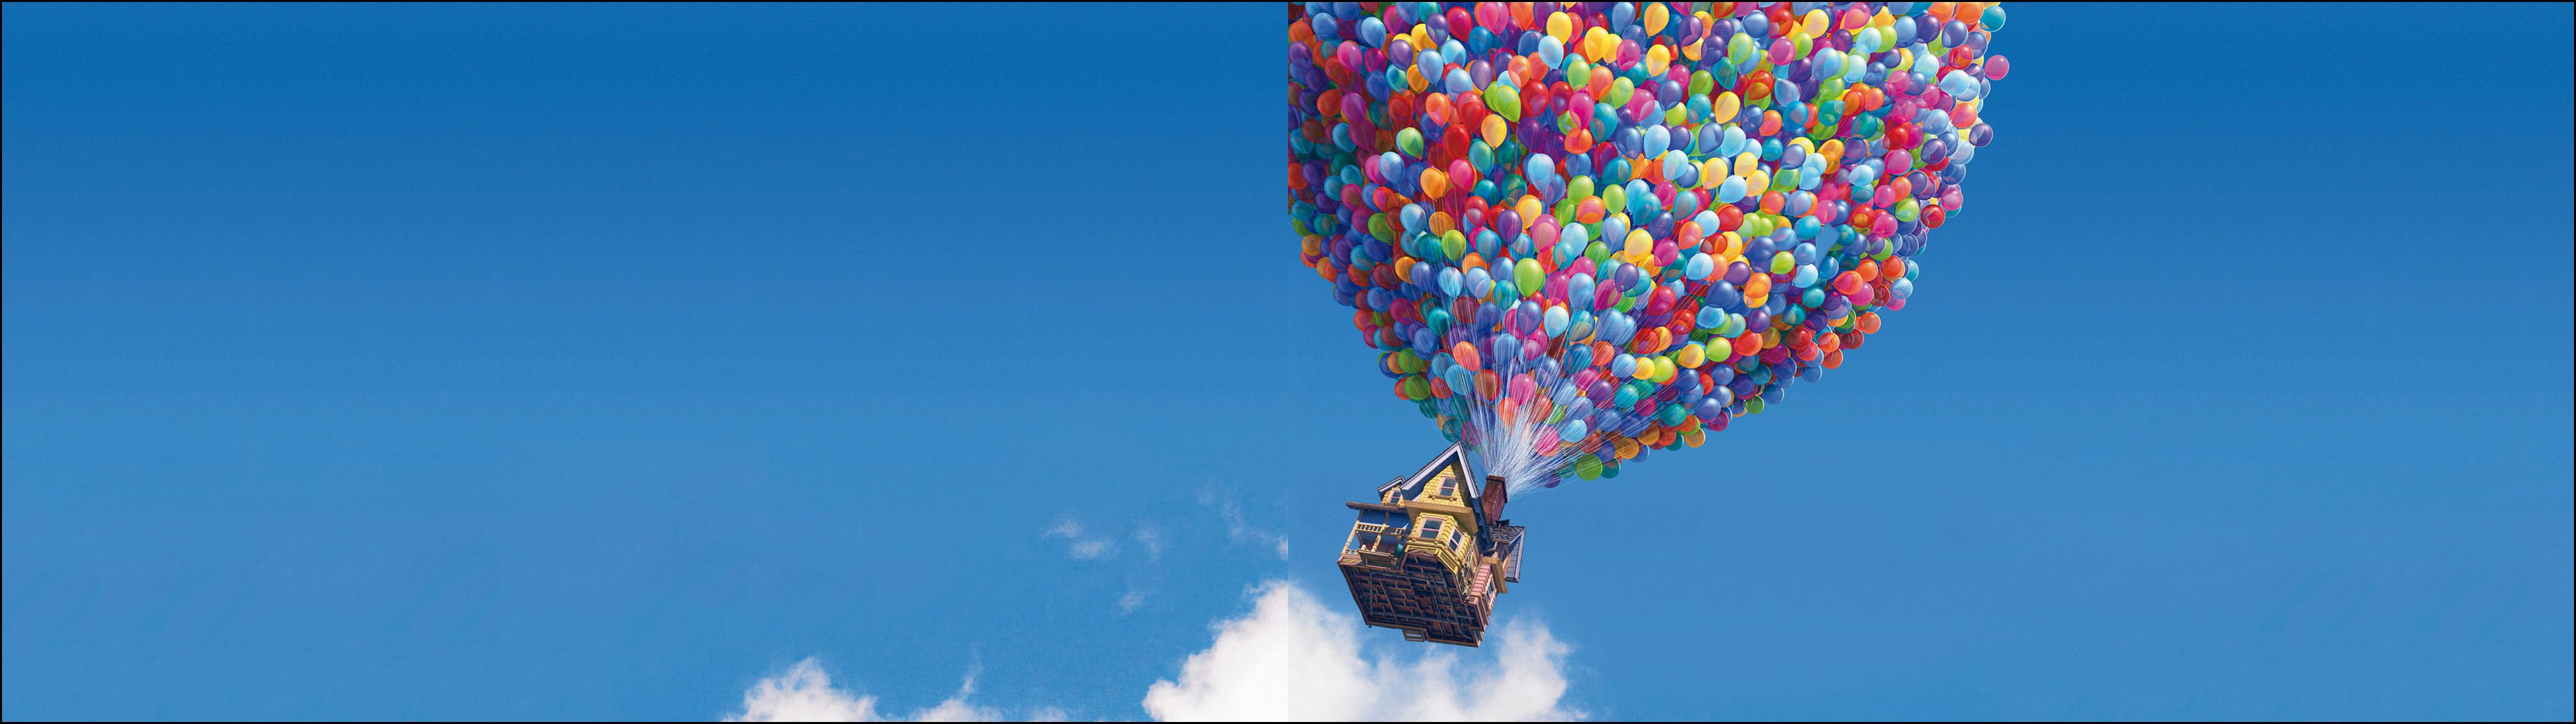 up movie | pixar up (movie) fresh new hd wallpaper | disney